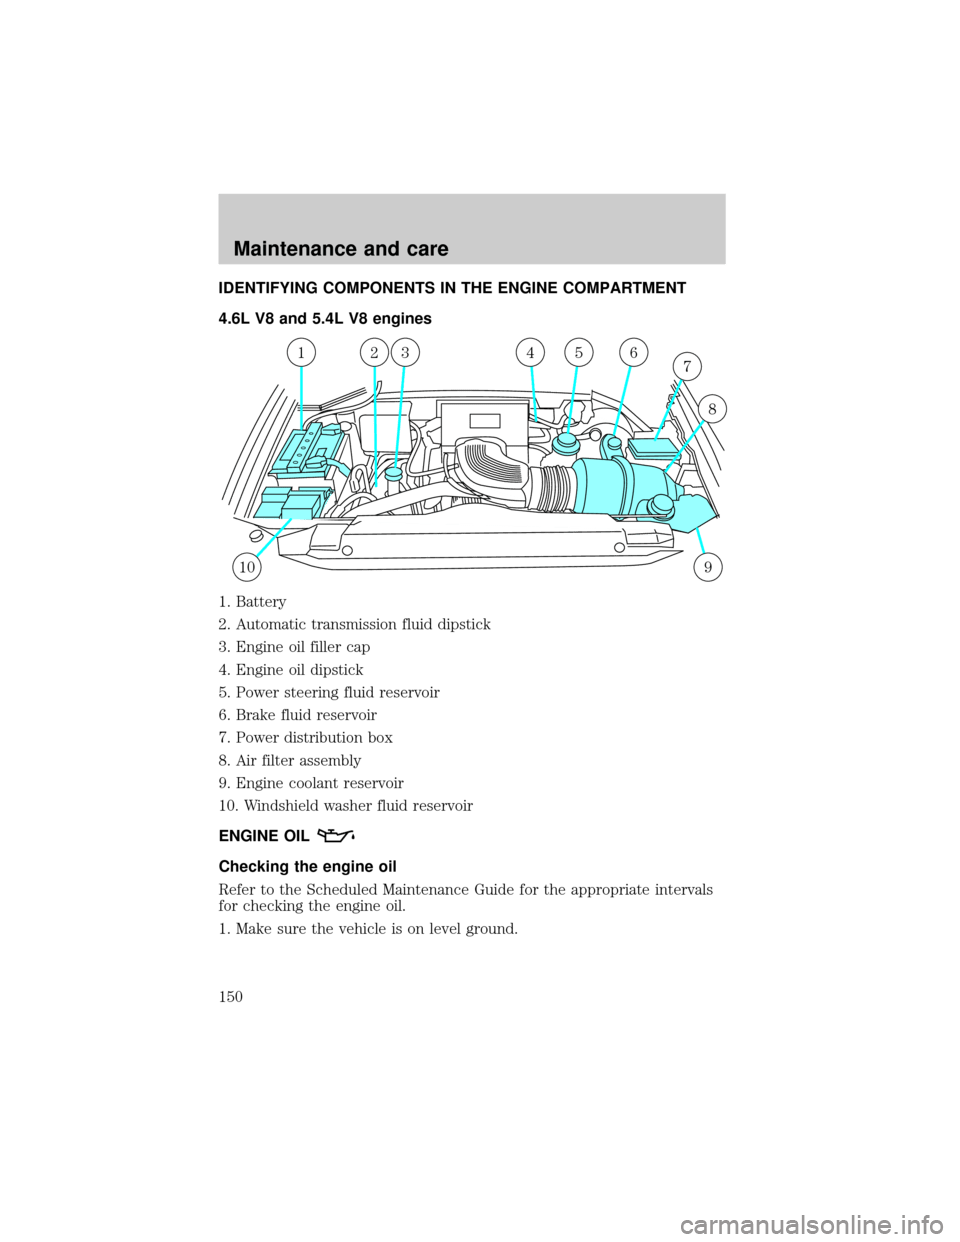 hight resolution of ford f150 2001 10 g owners manual page 150 identifying components in the